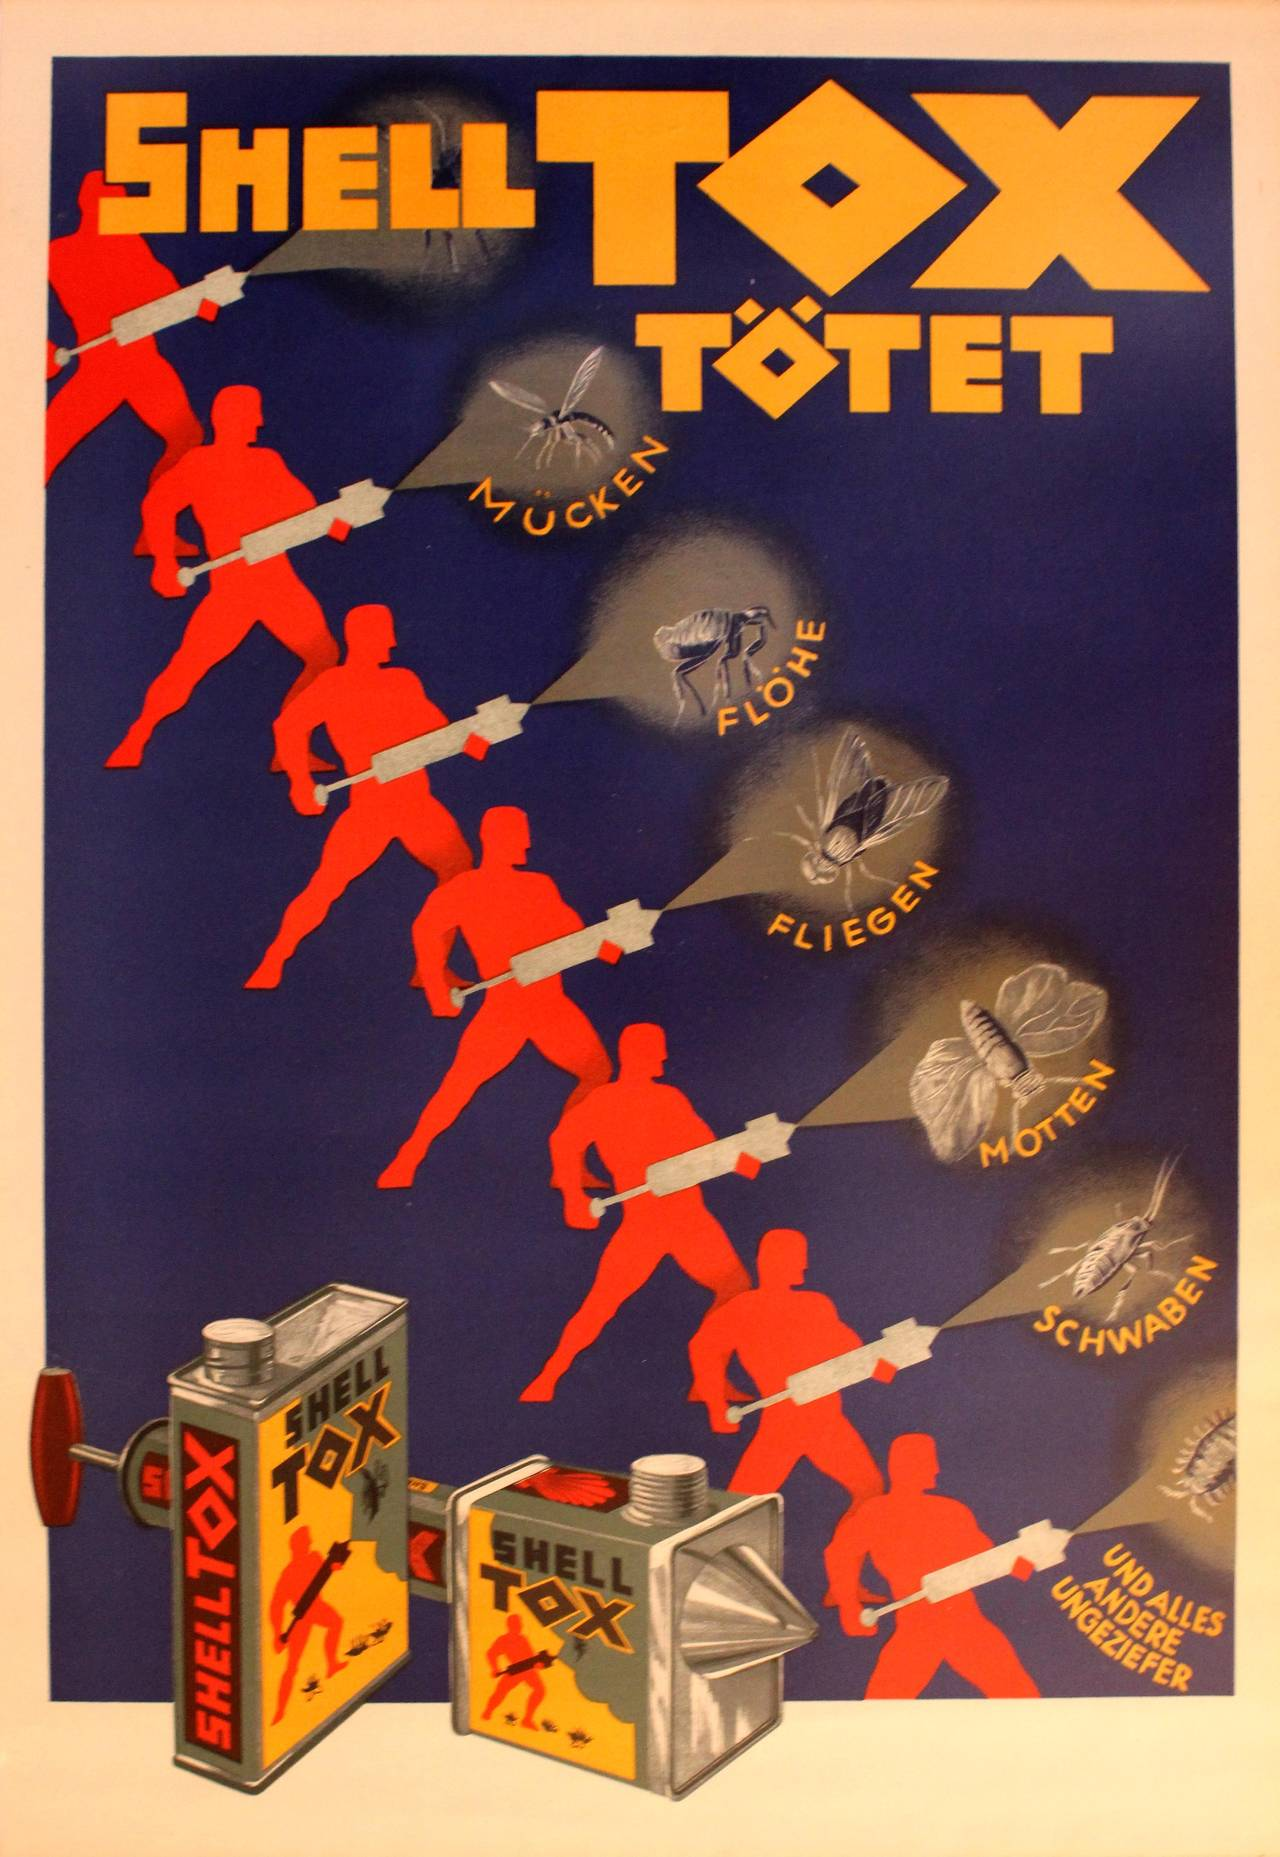 Poster design 1920s - Unknown Original Vintage 1920s Art Deco Advertising Poster For Shell Tox Insecticide 1